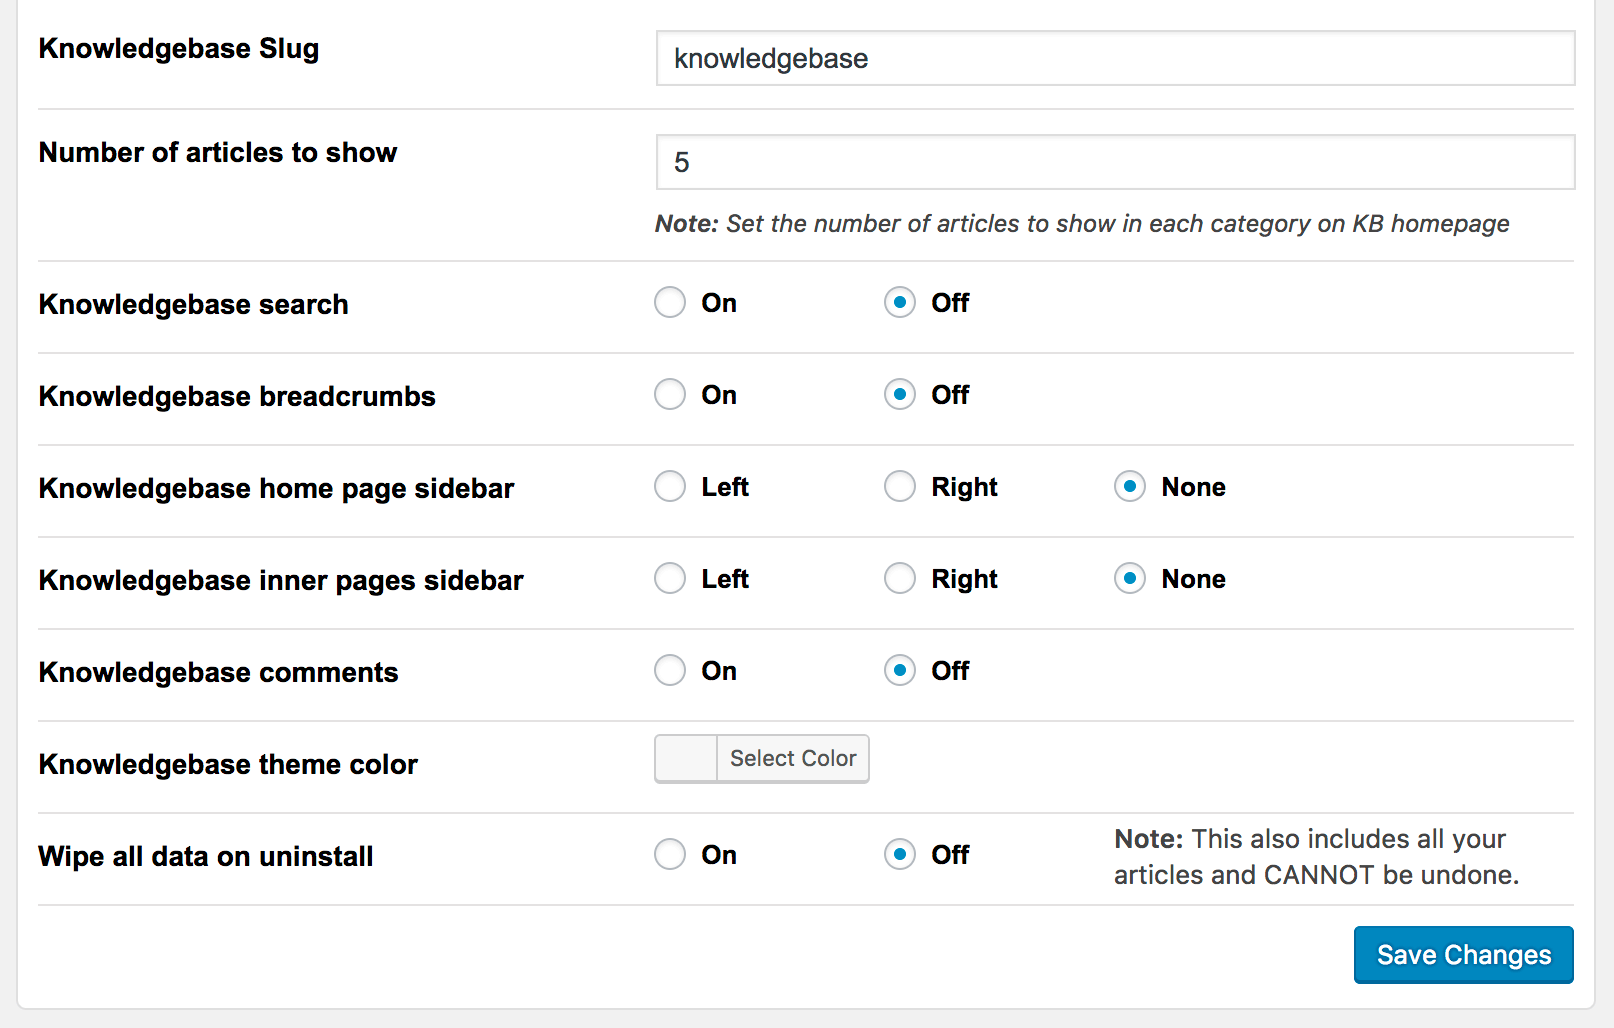 Knowledge base options interface